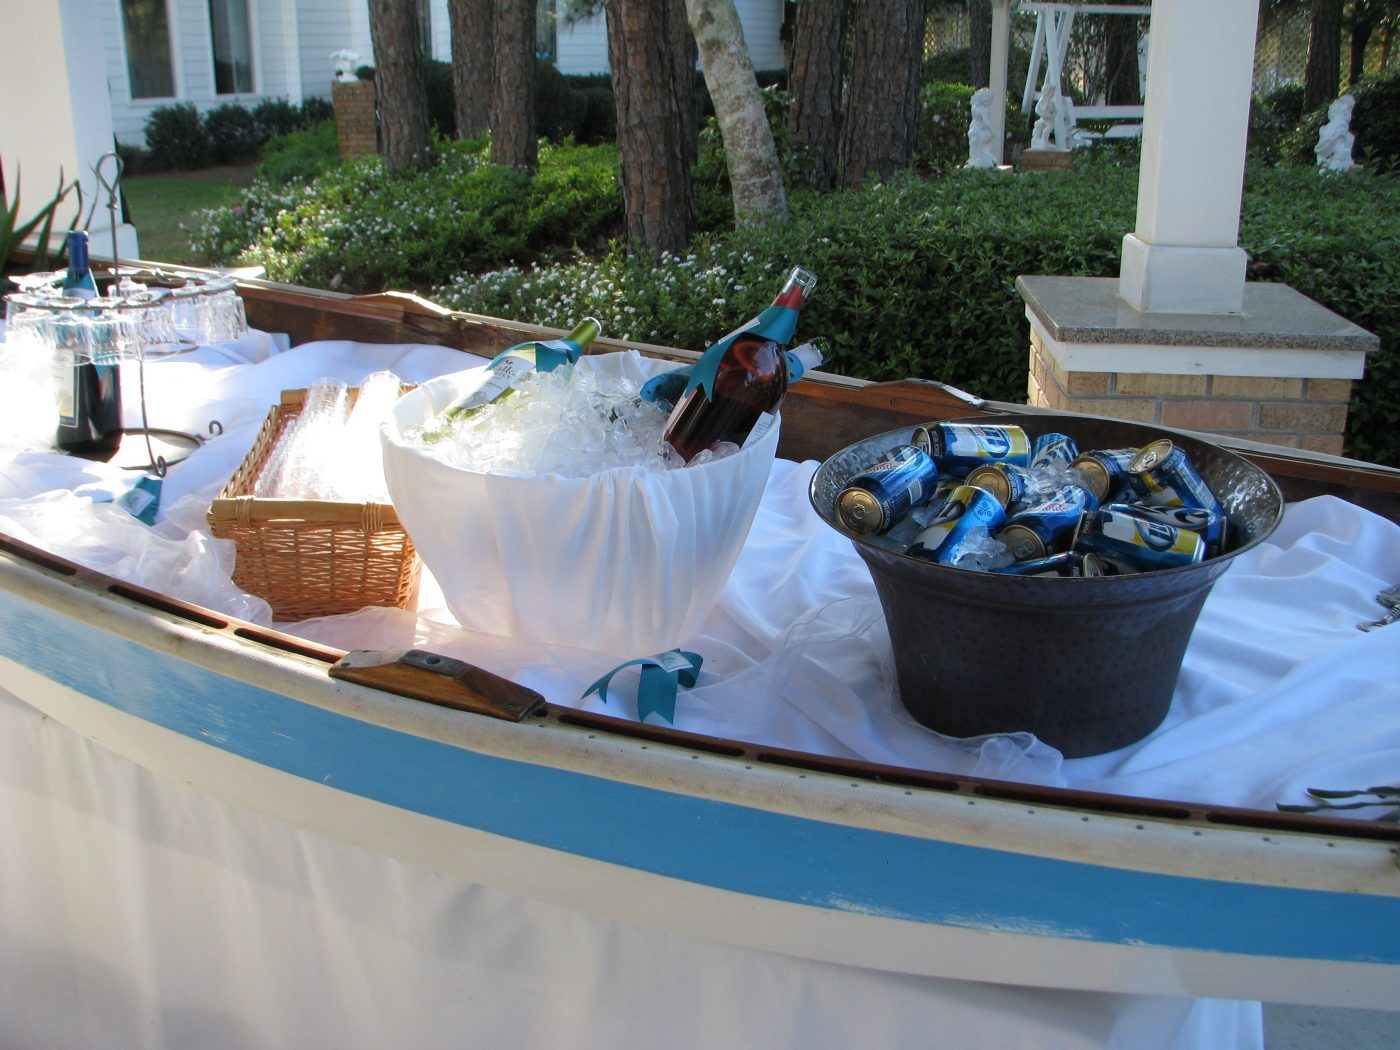 The wooden boat is our BAR